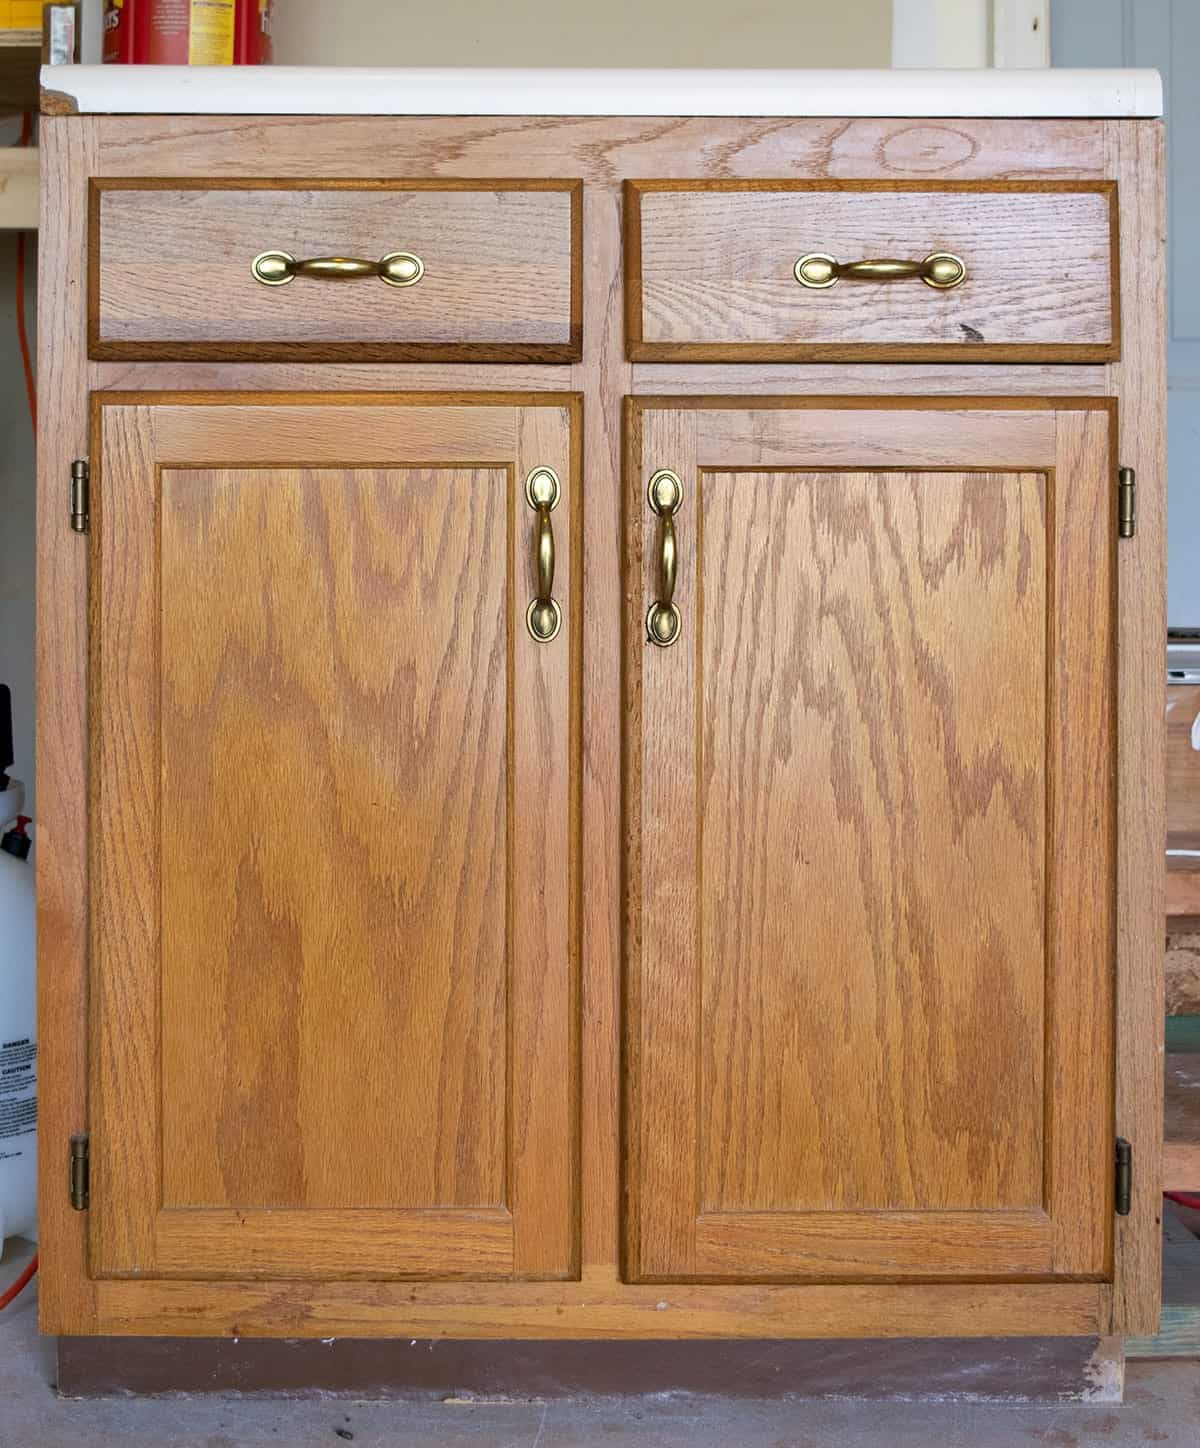 Old oak wood kitchen cabinet section in garage with coffee canister on top.